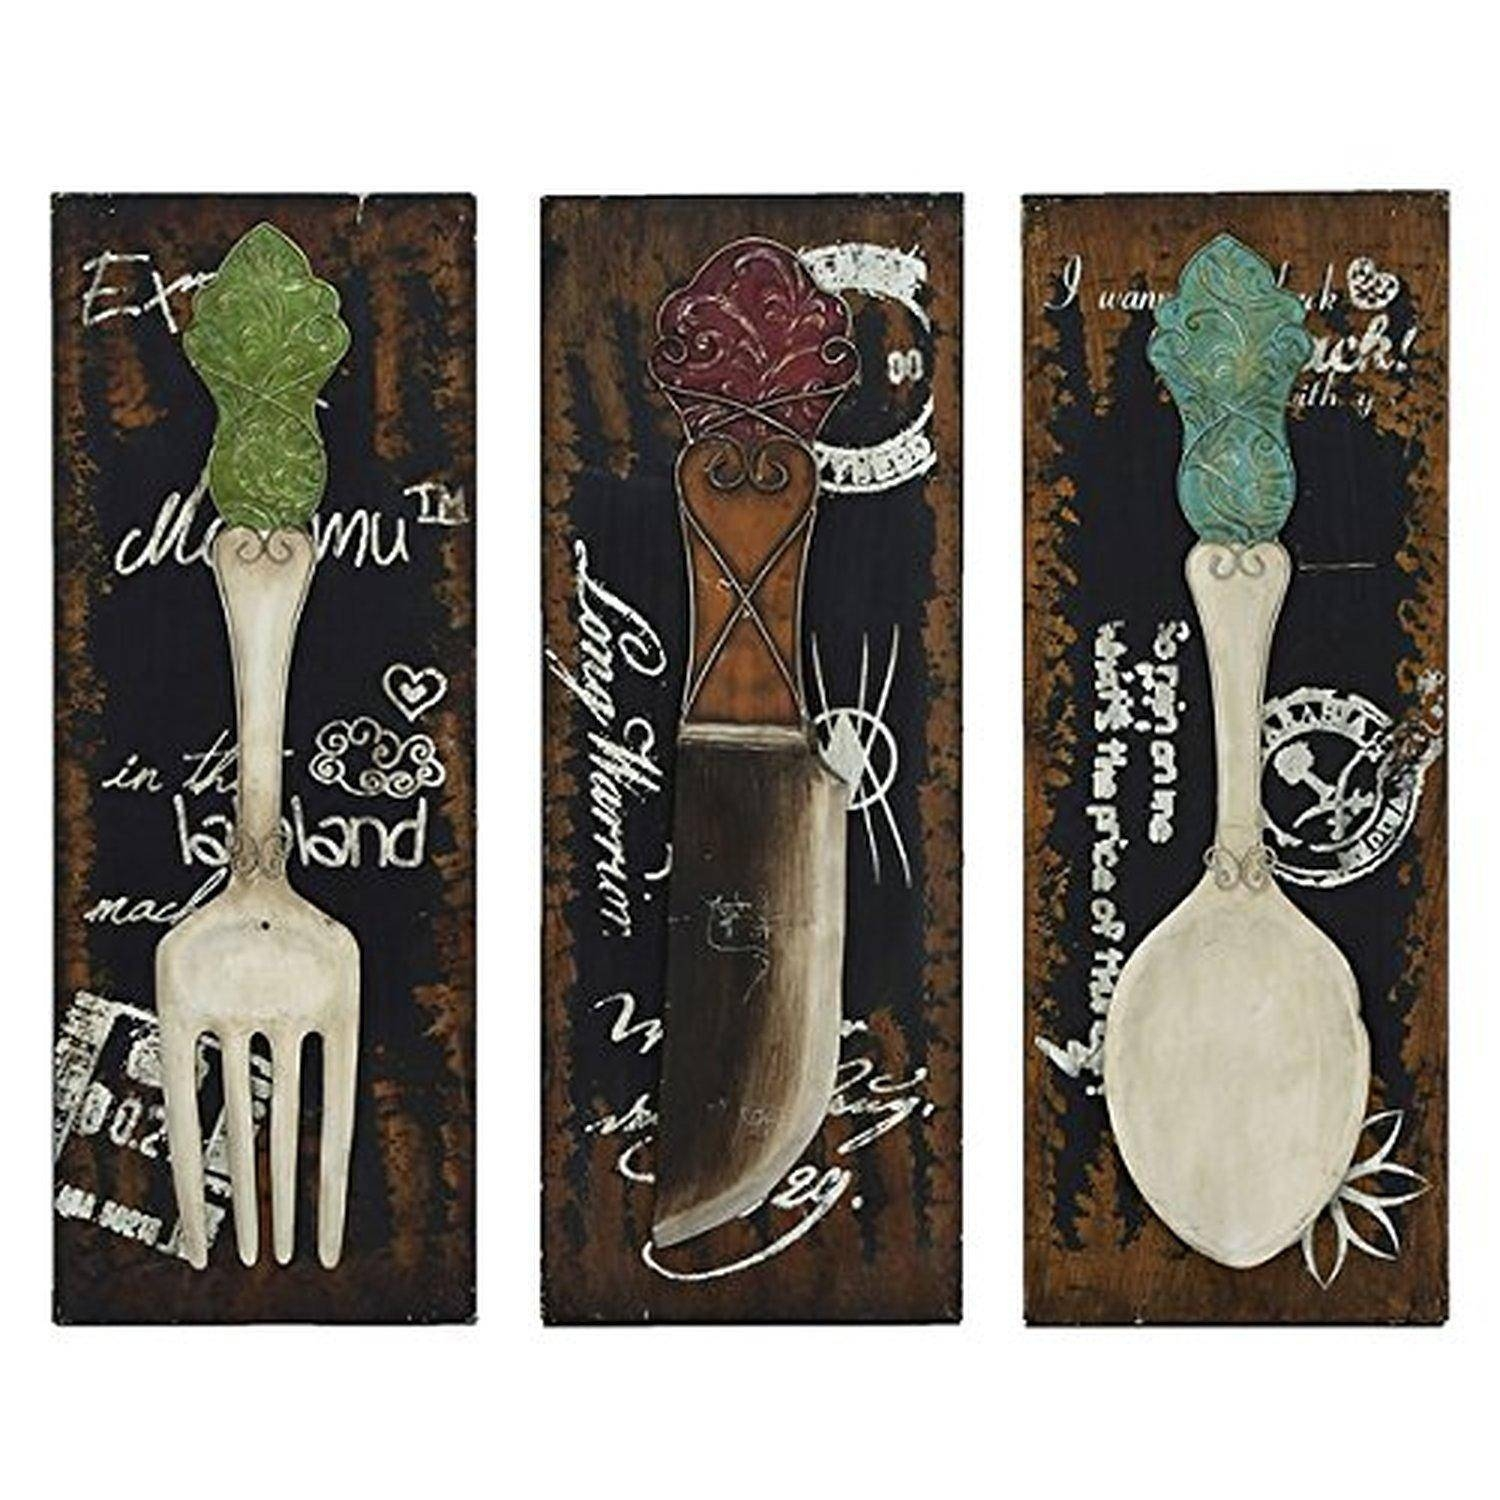 Stupendous Large Utensil Wall Decor Big Spoon And Fork Trendy Wall With Regard To Best And Newest Large Utensil Wall Art (View 10 of 20)